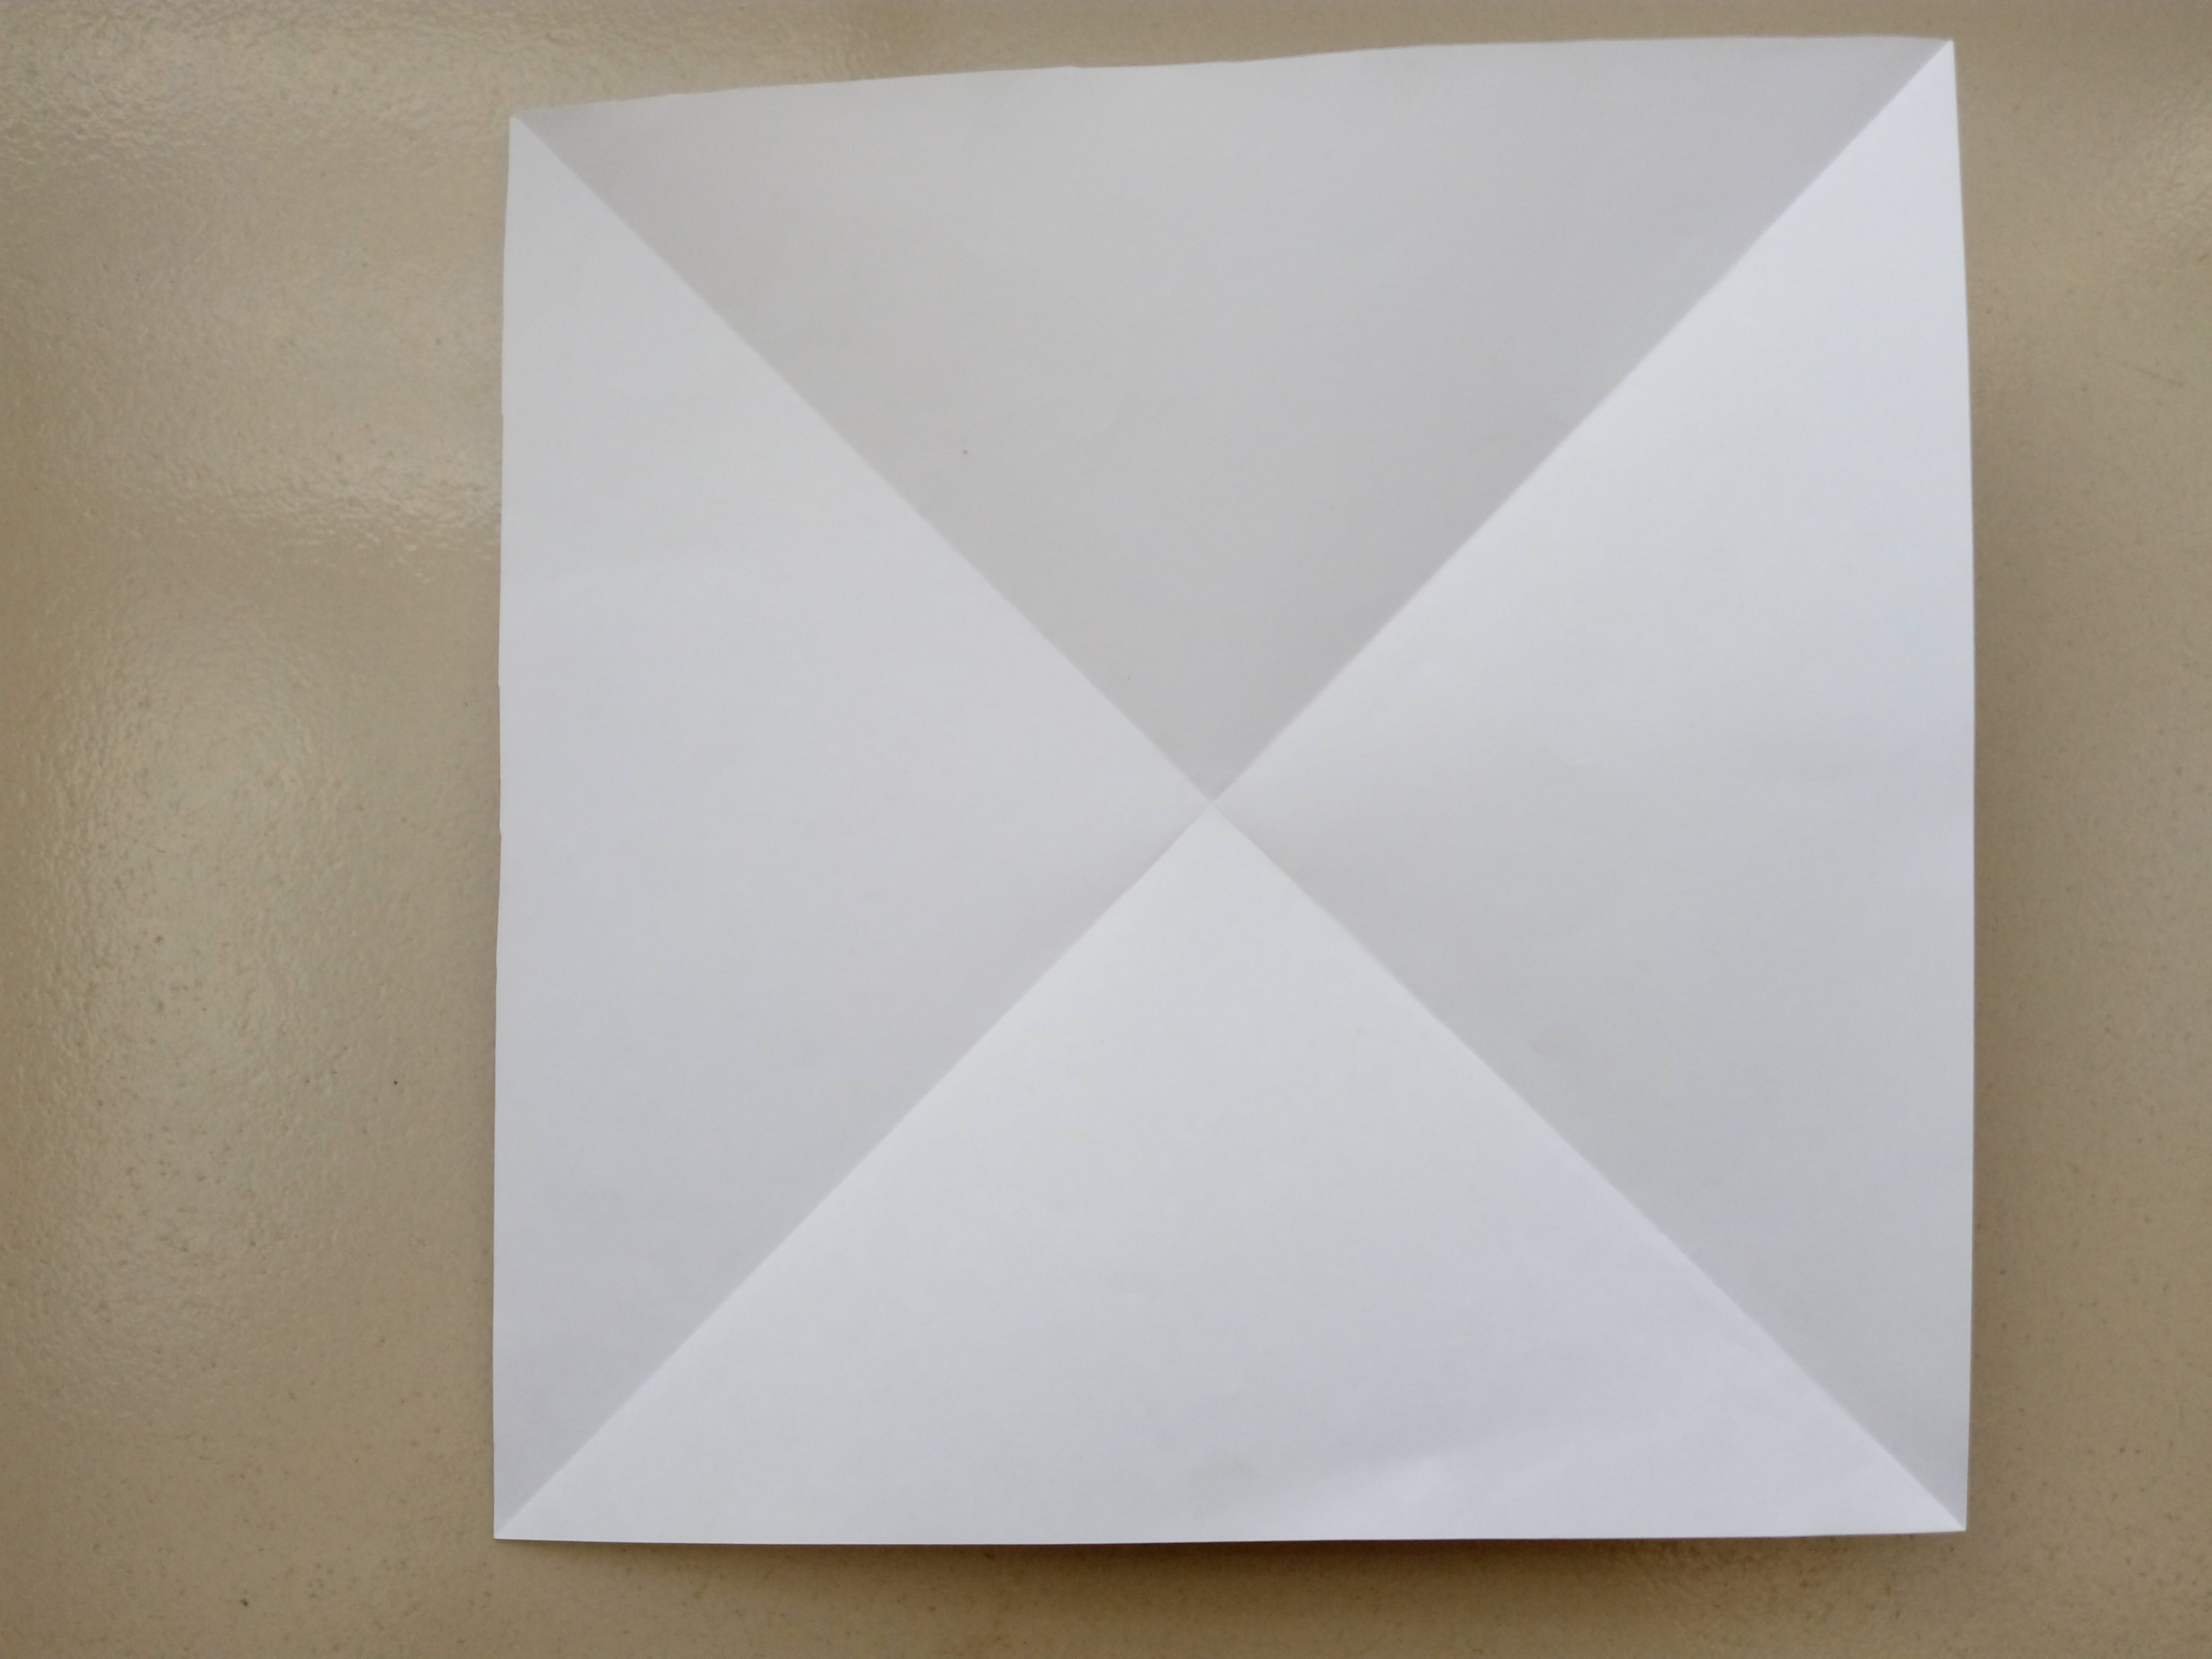 Picture of Fold the Square Paper in Half on Both Diagonal Axis. Cease Well and Unfold.